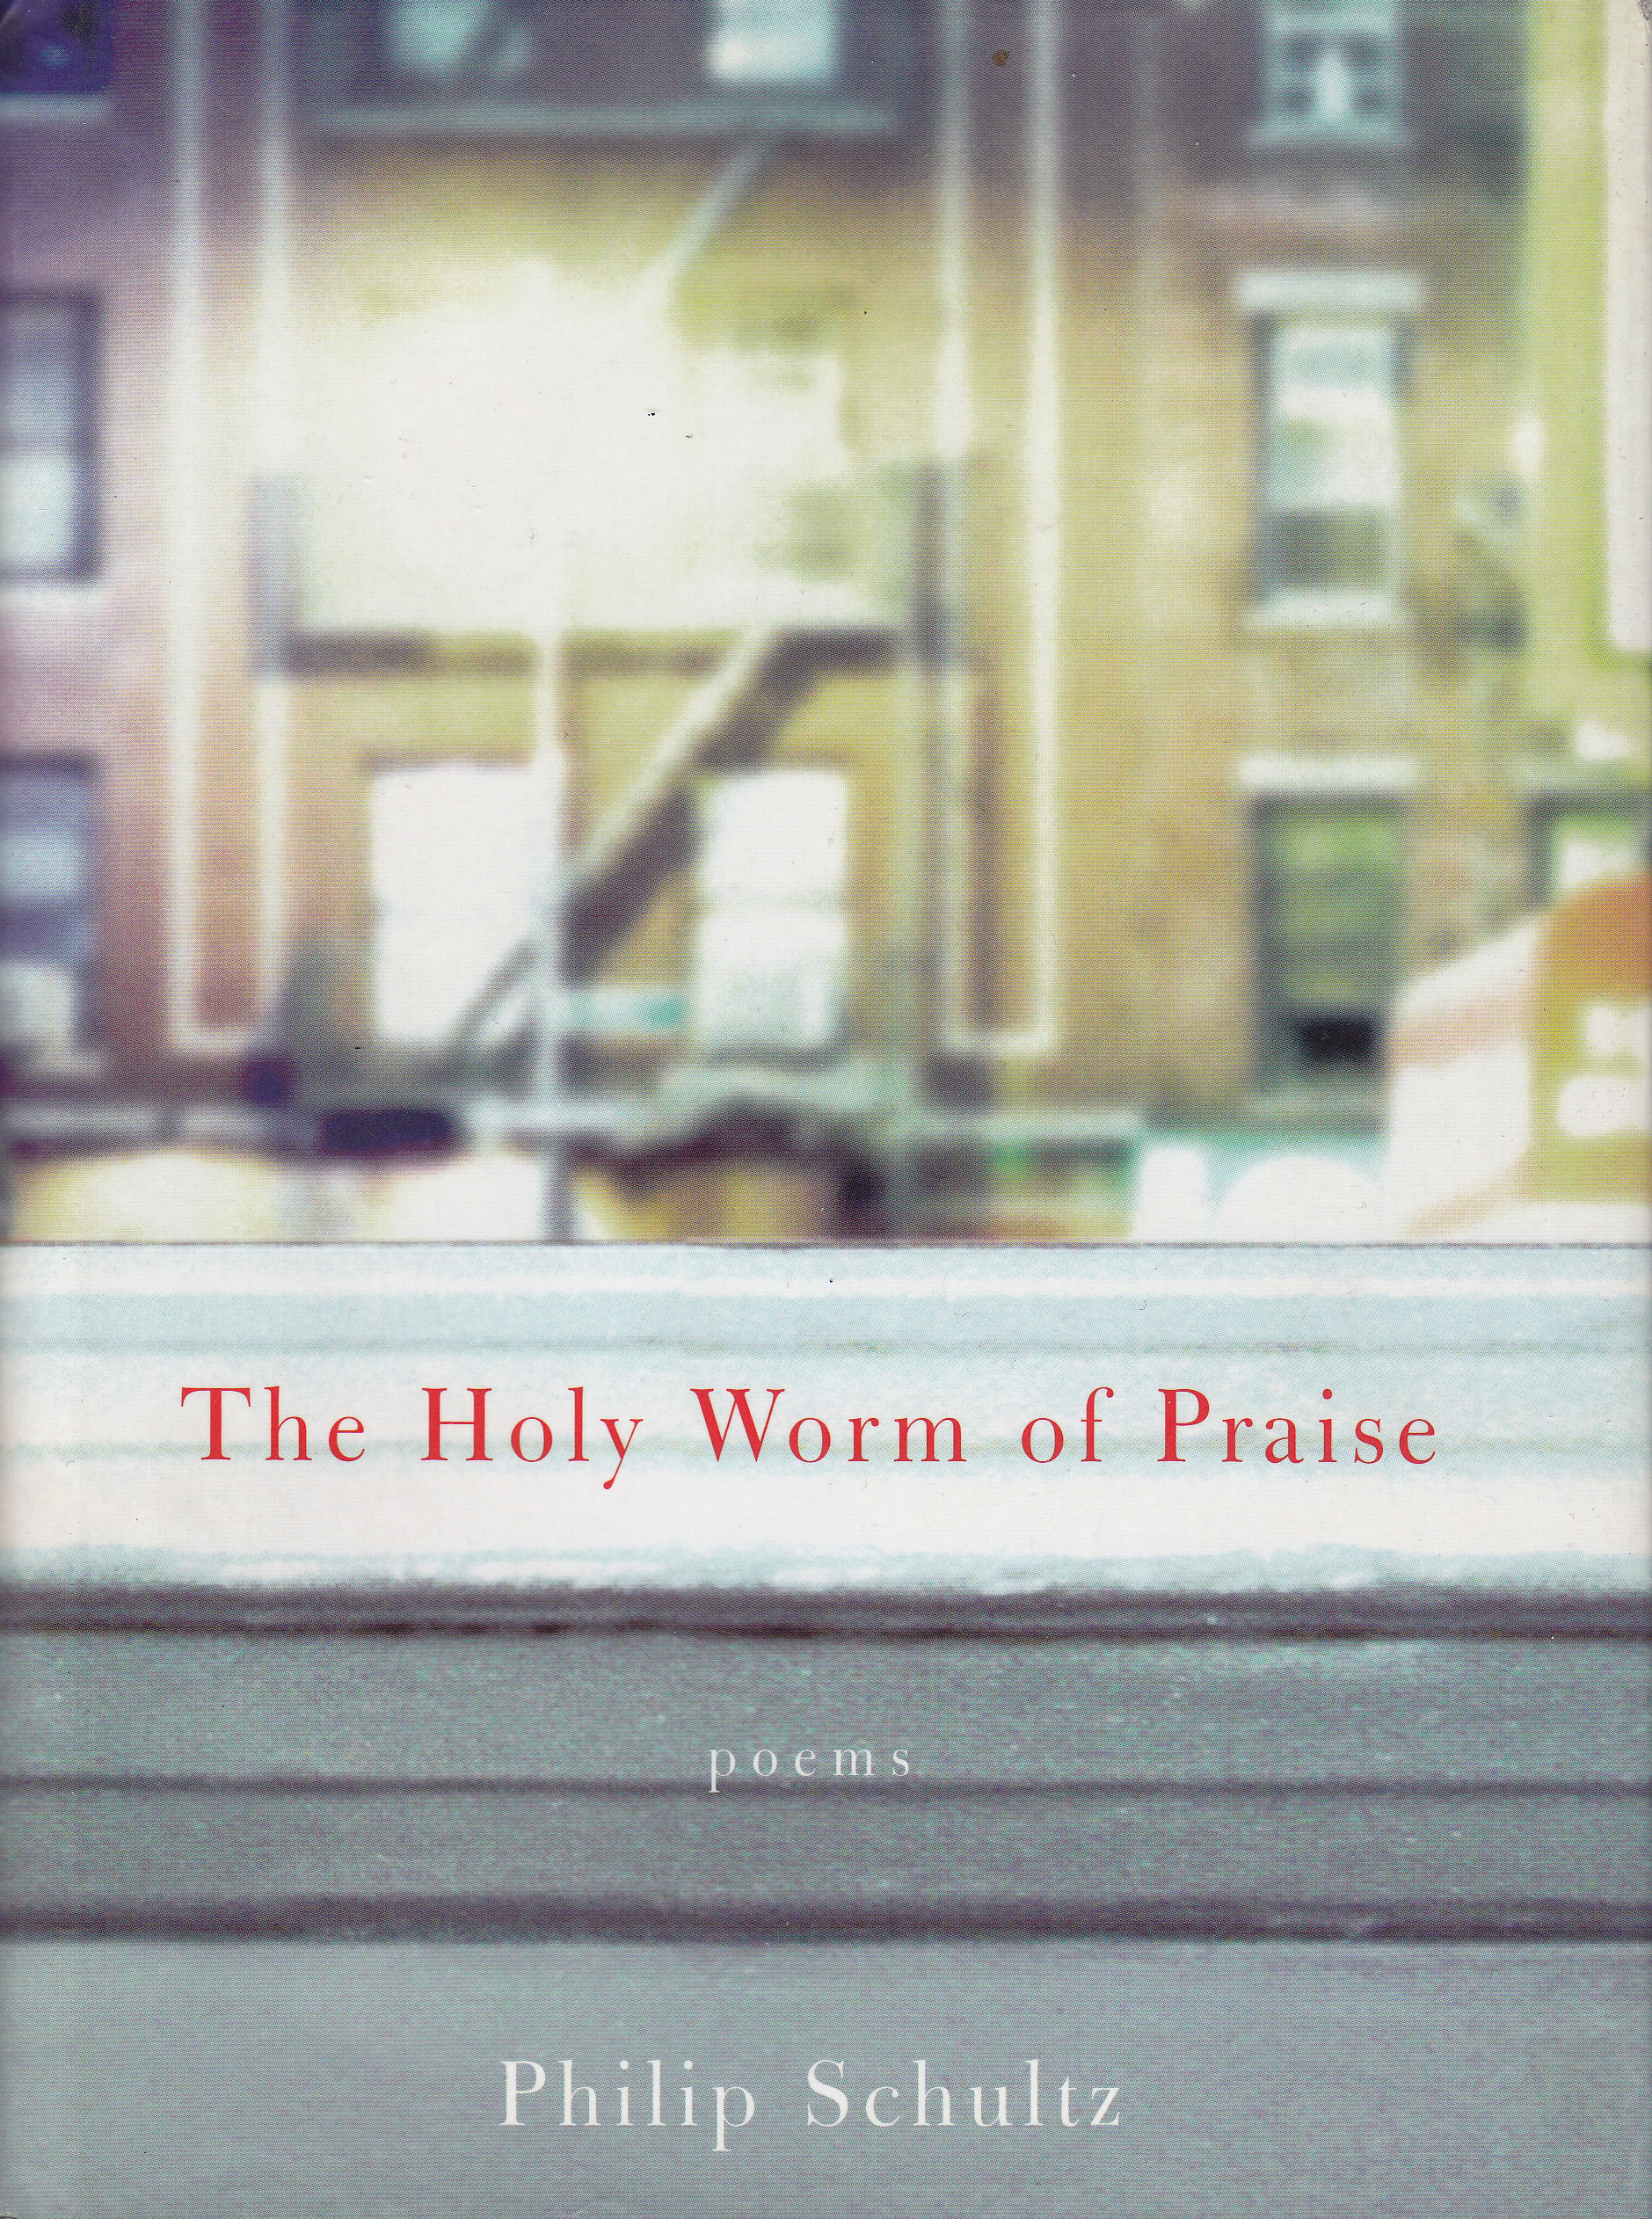 The Holy Worm of Praise by Phillip Schultz